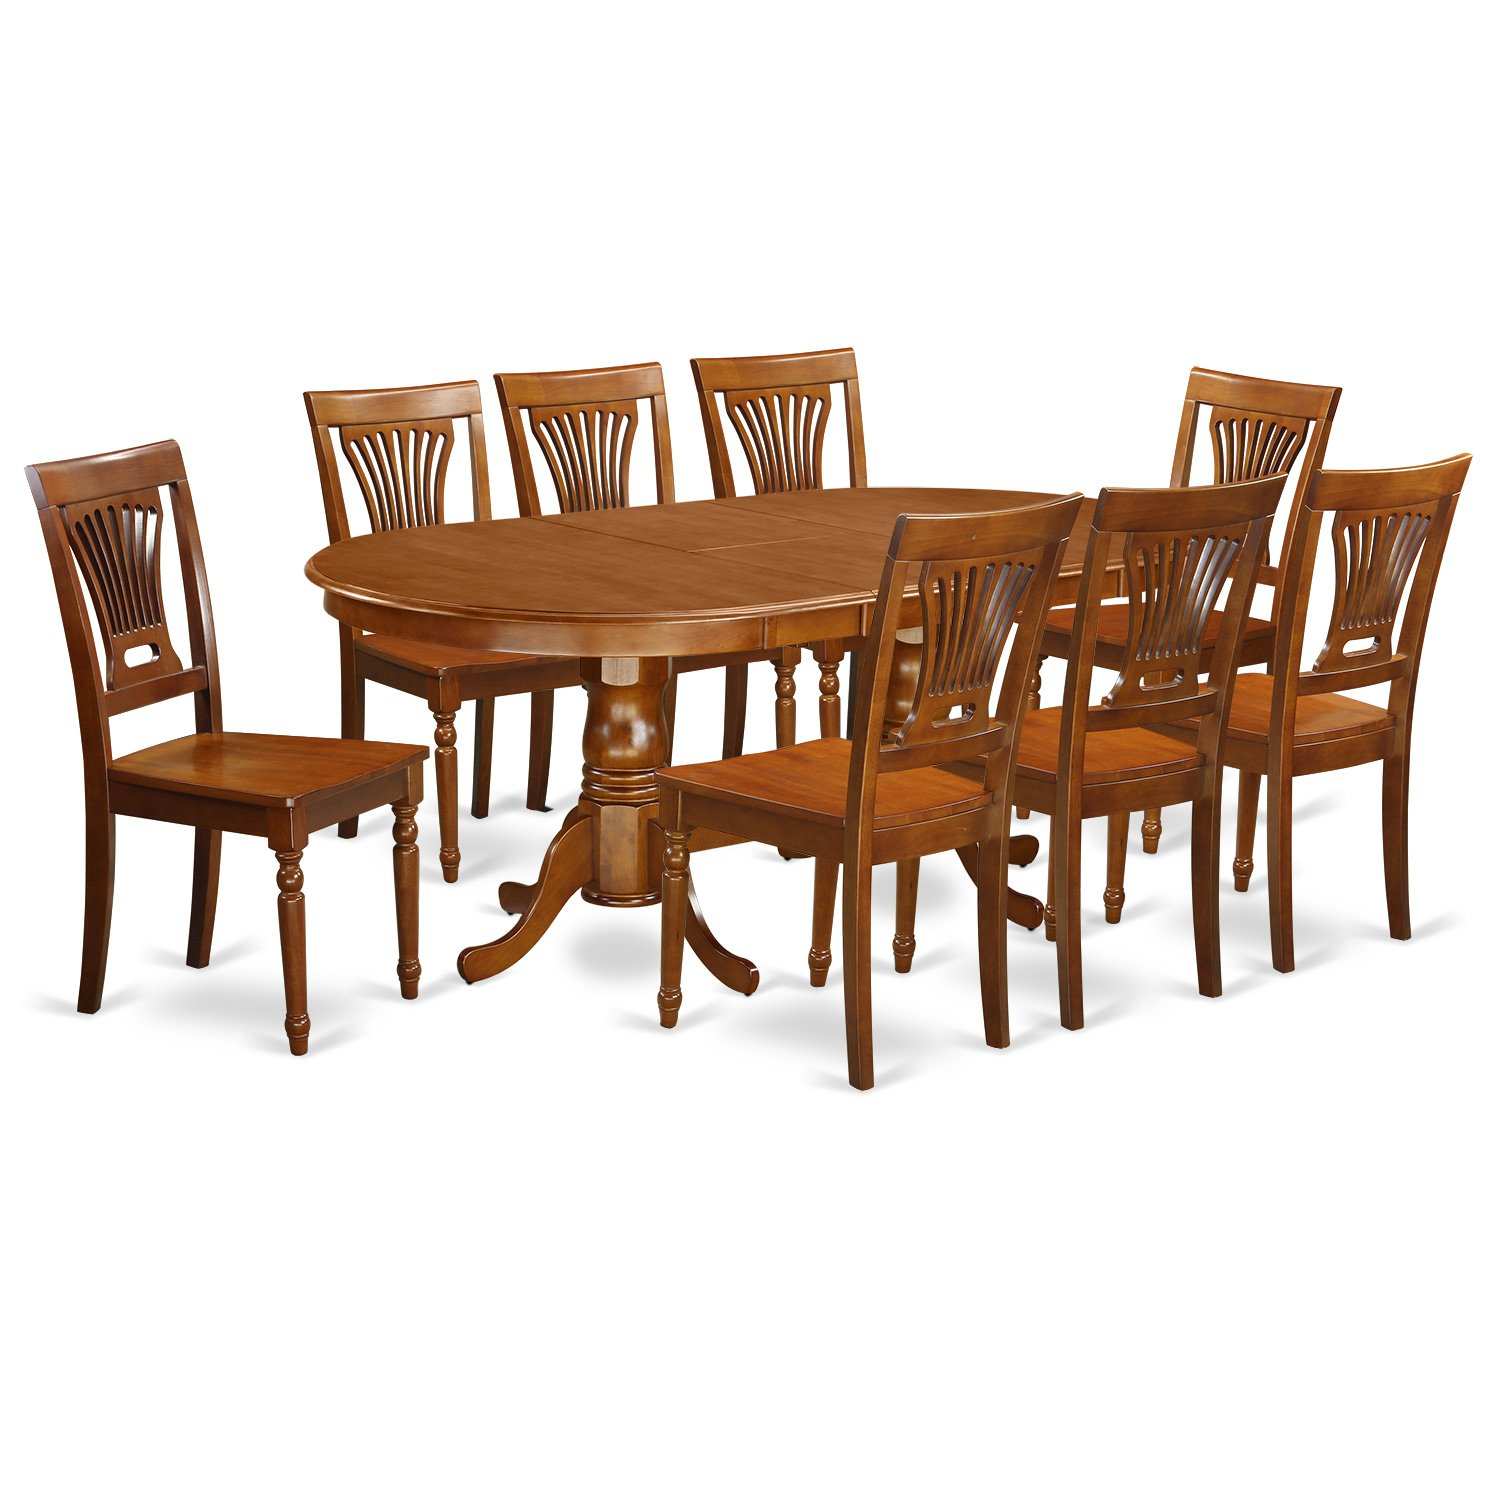 9 PC Dining room set for 8-Dining Table and 8 Dining Chairs